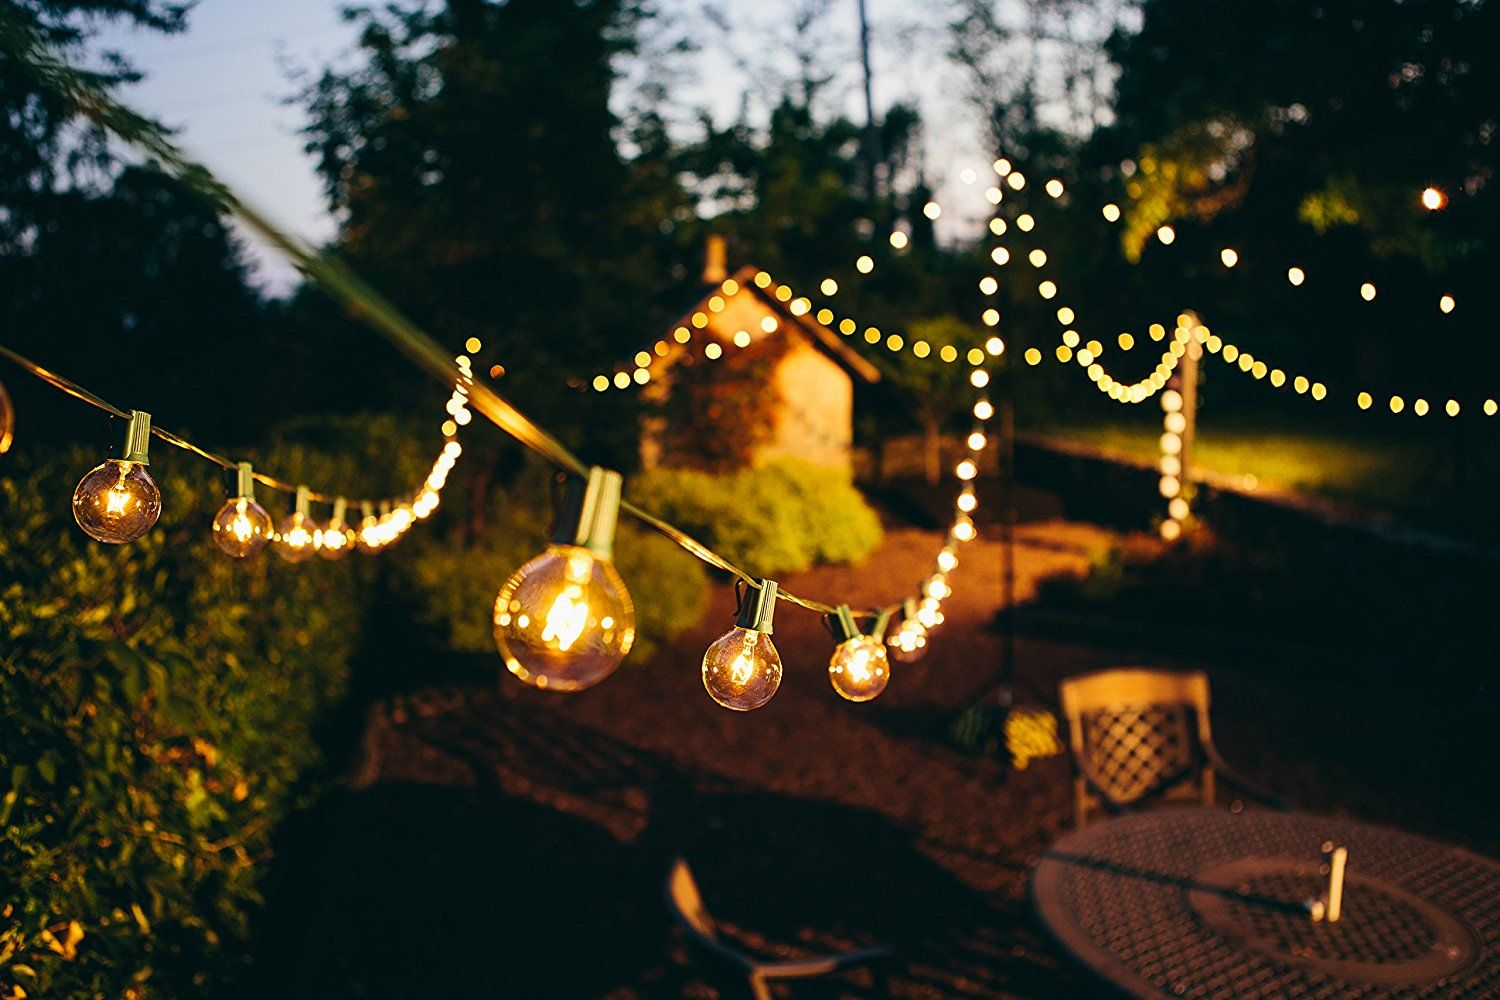 Amazon.com : Brightech   Ambience   Outdoor String Lights With 25 G40 Clear  Globe